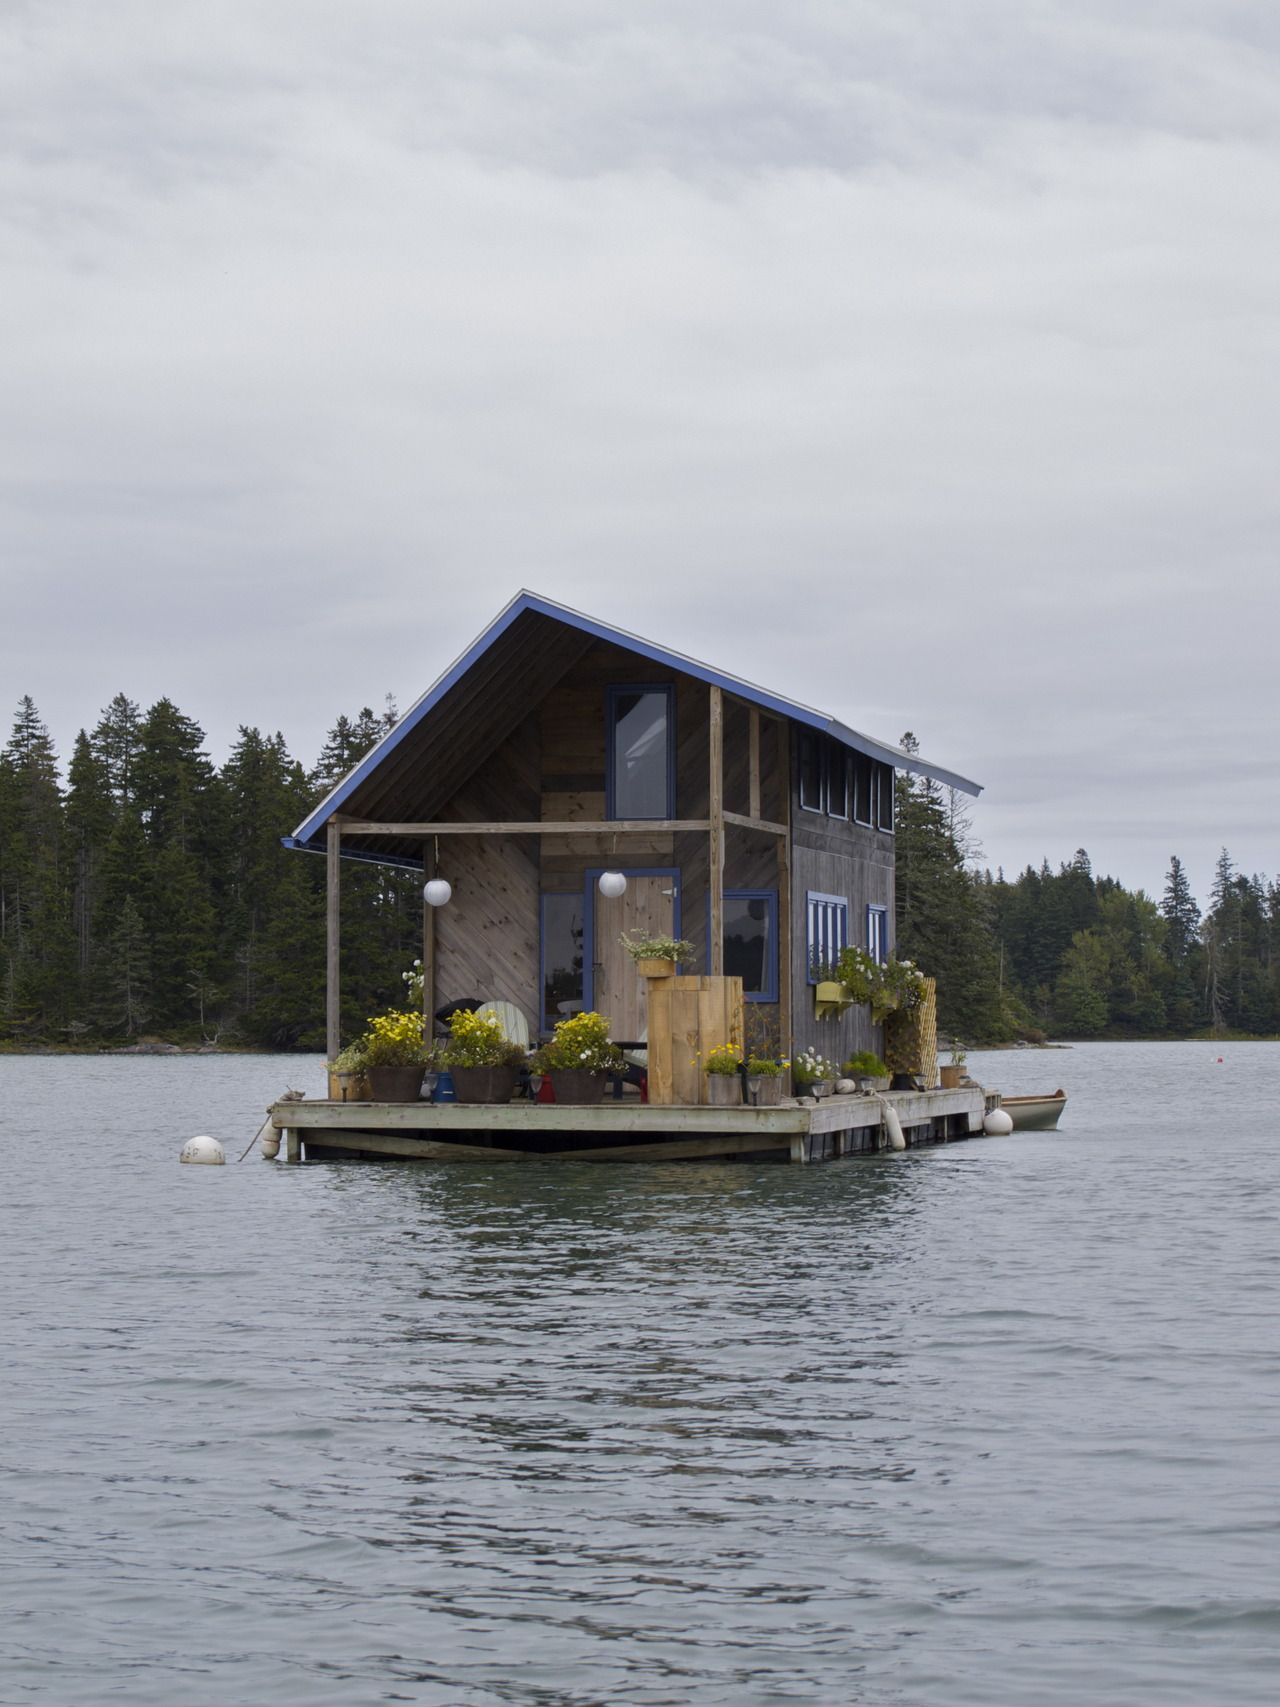 Hand Built Floating Cabin In Perry Creek On The Houseboats